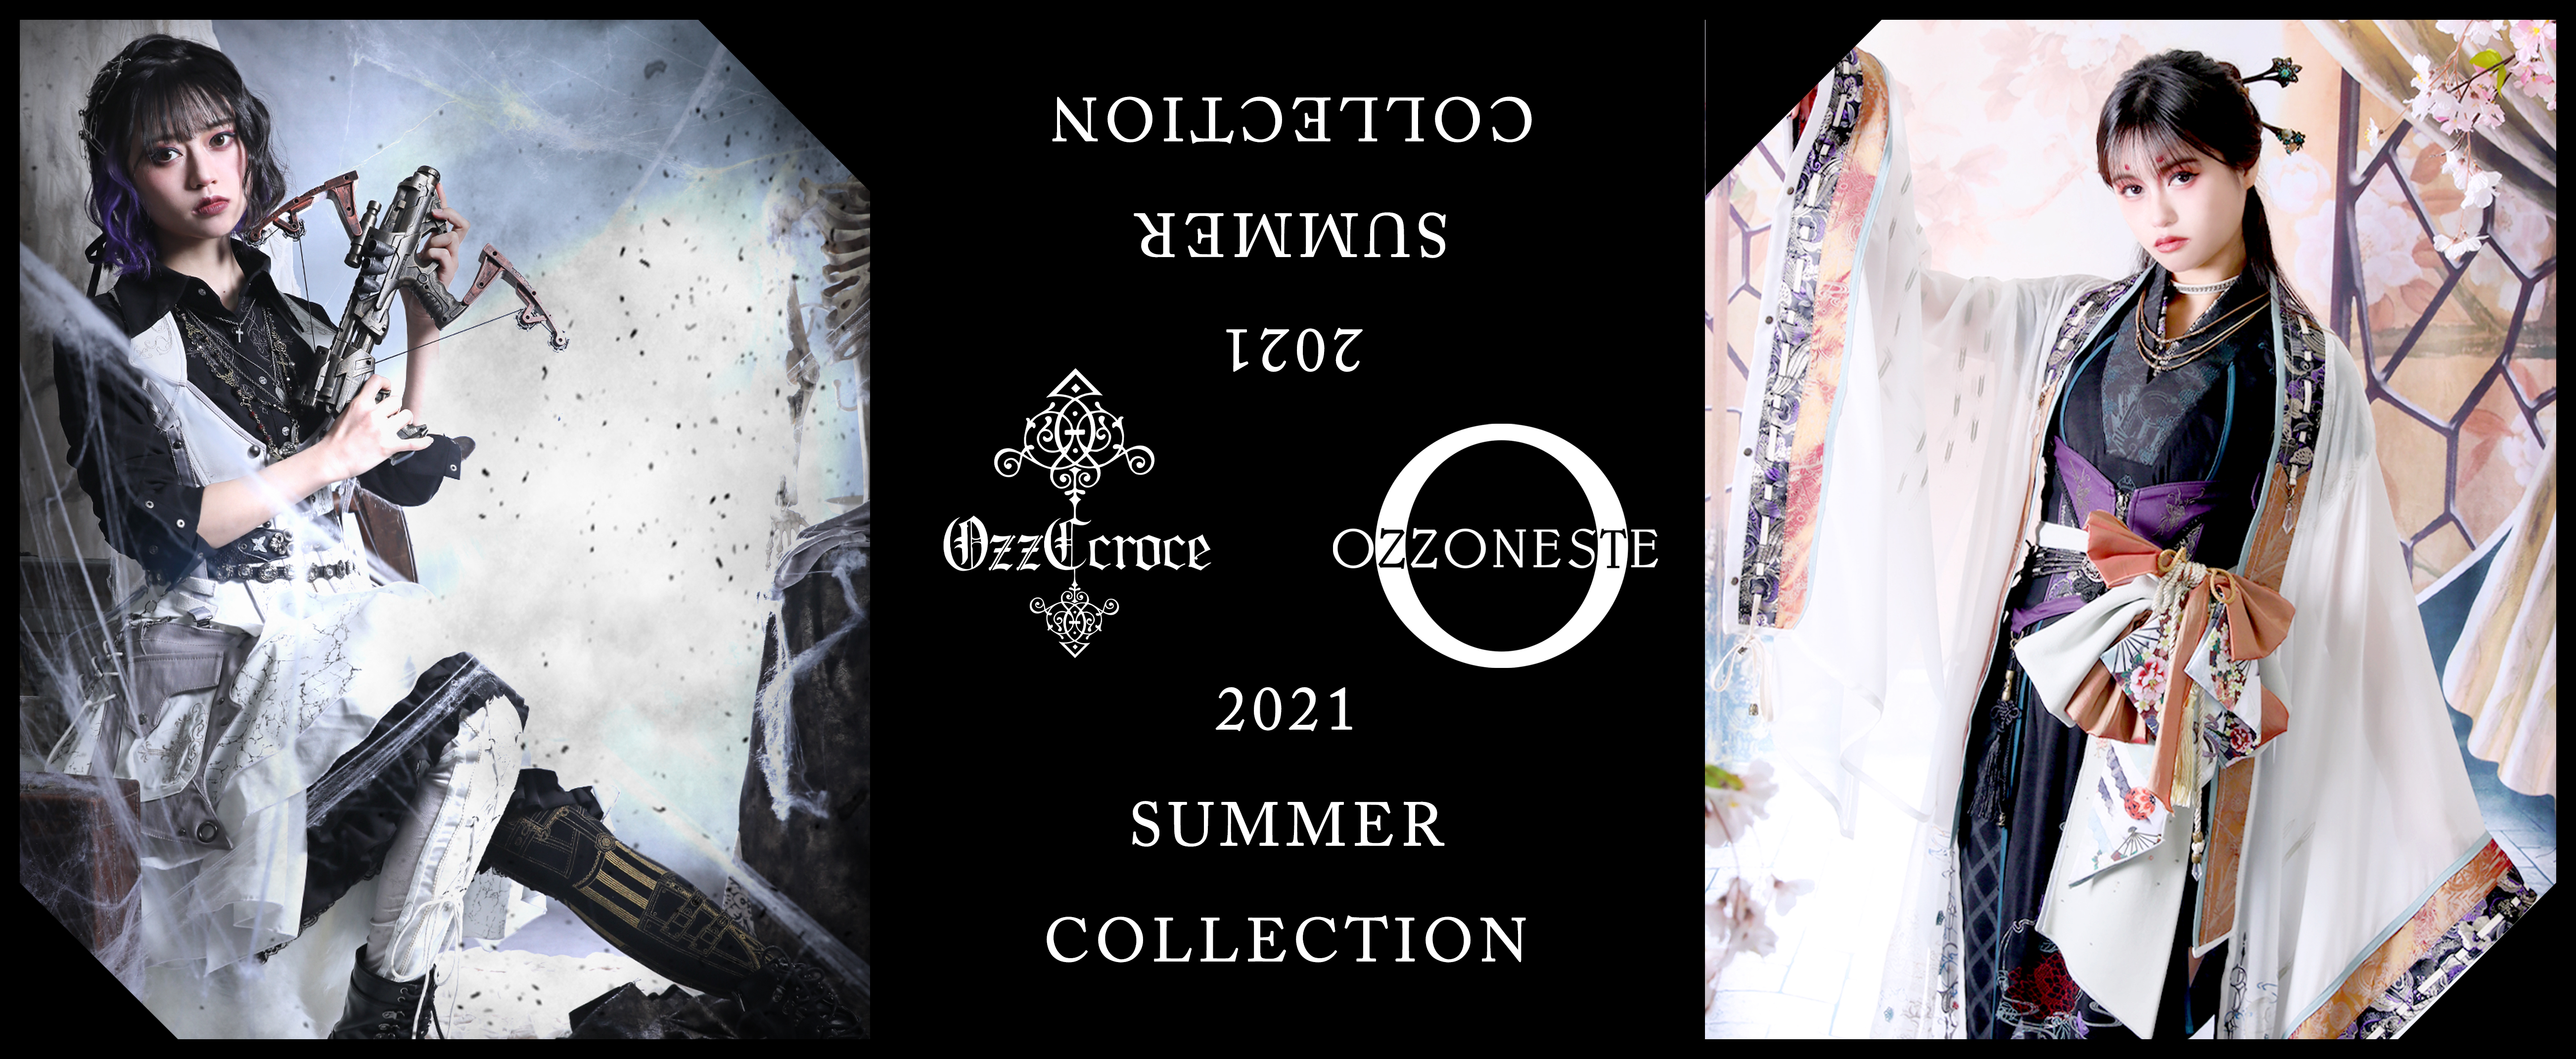 2021 SUMMER COLLECTION